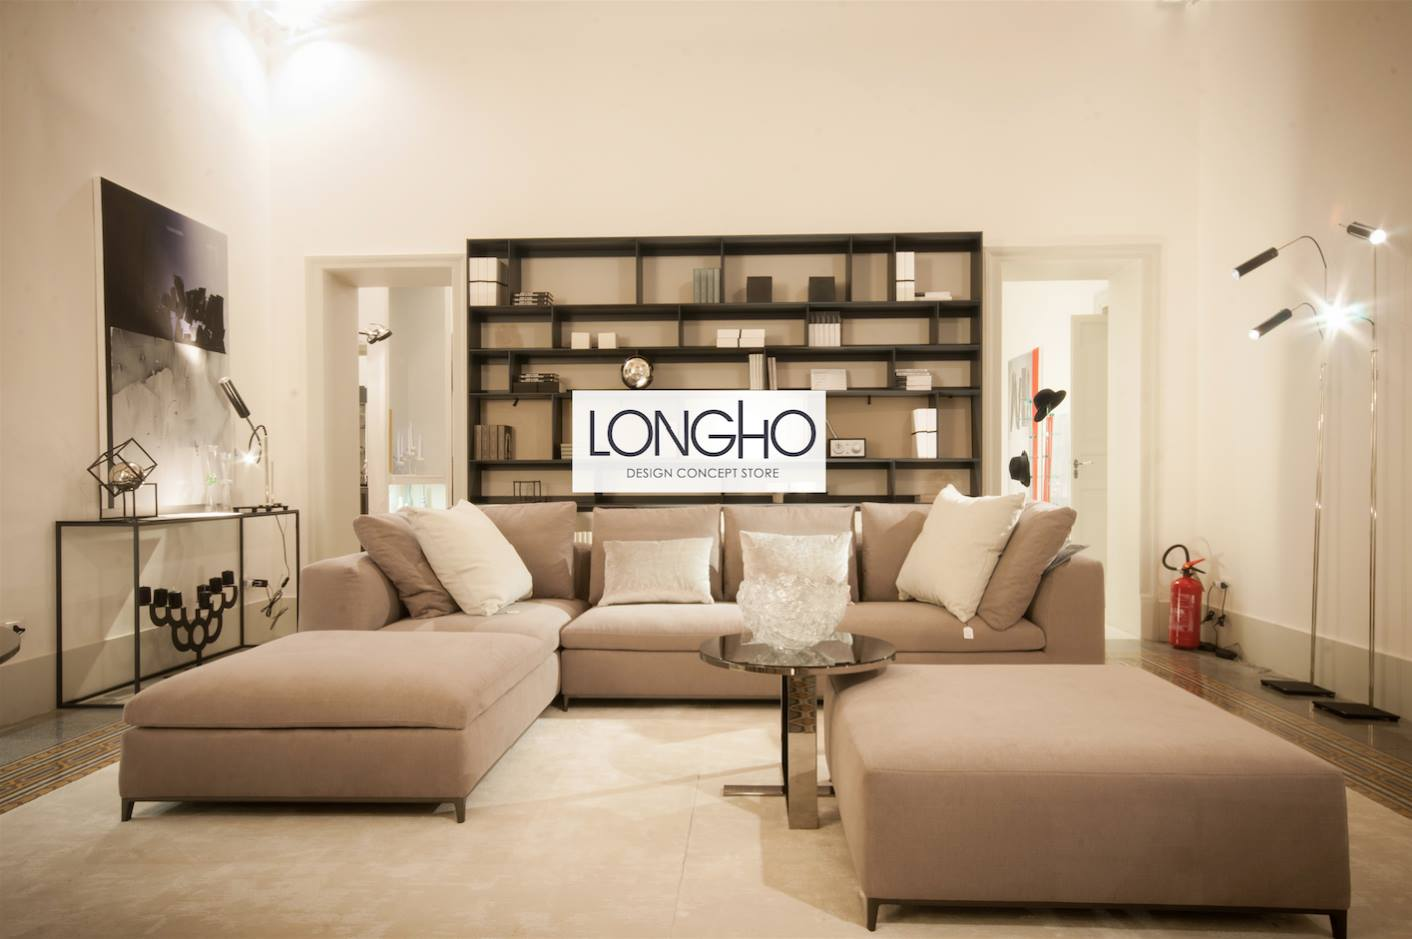 palermo Discover Here The Best Showrooms In Palermo longho